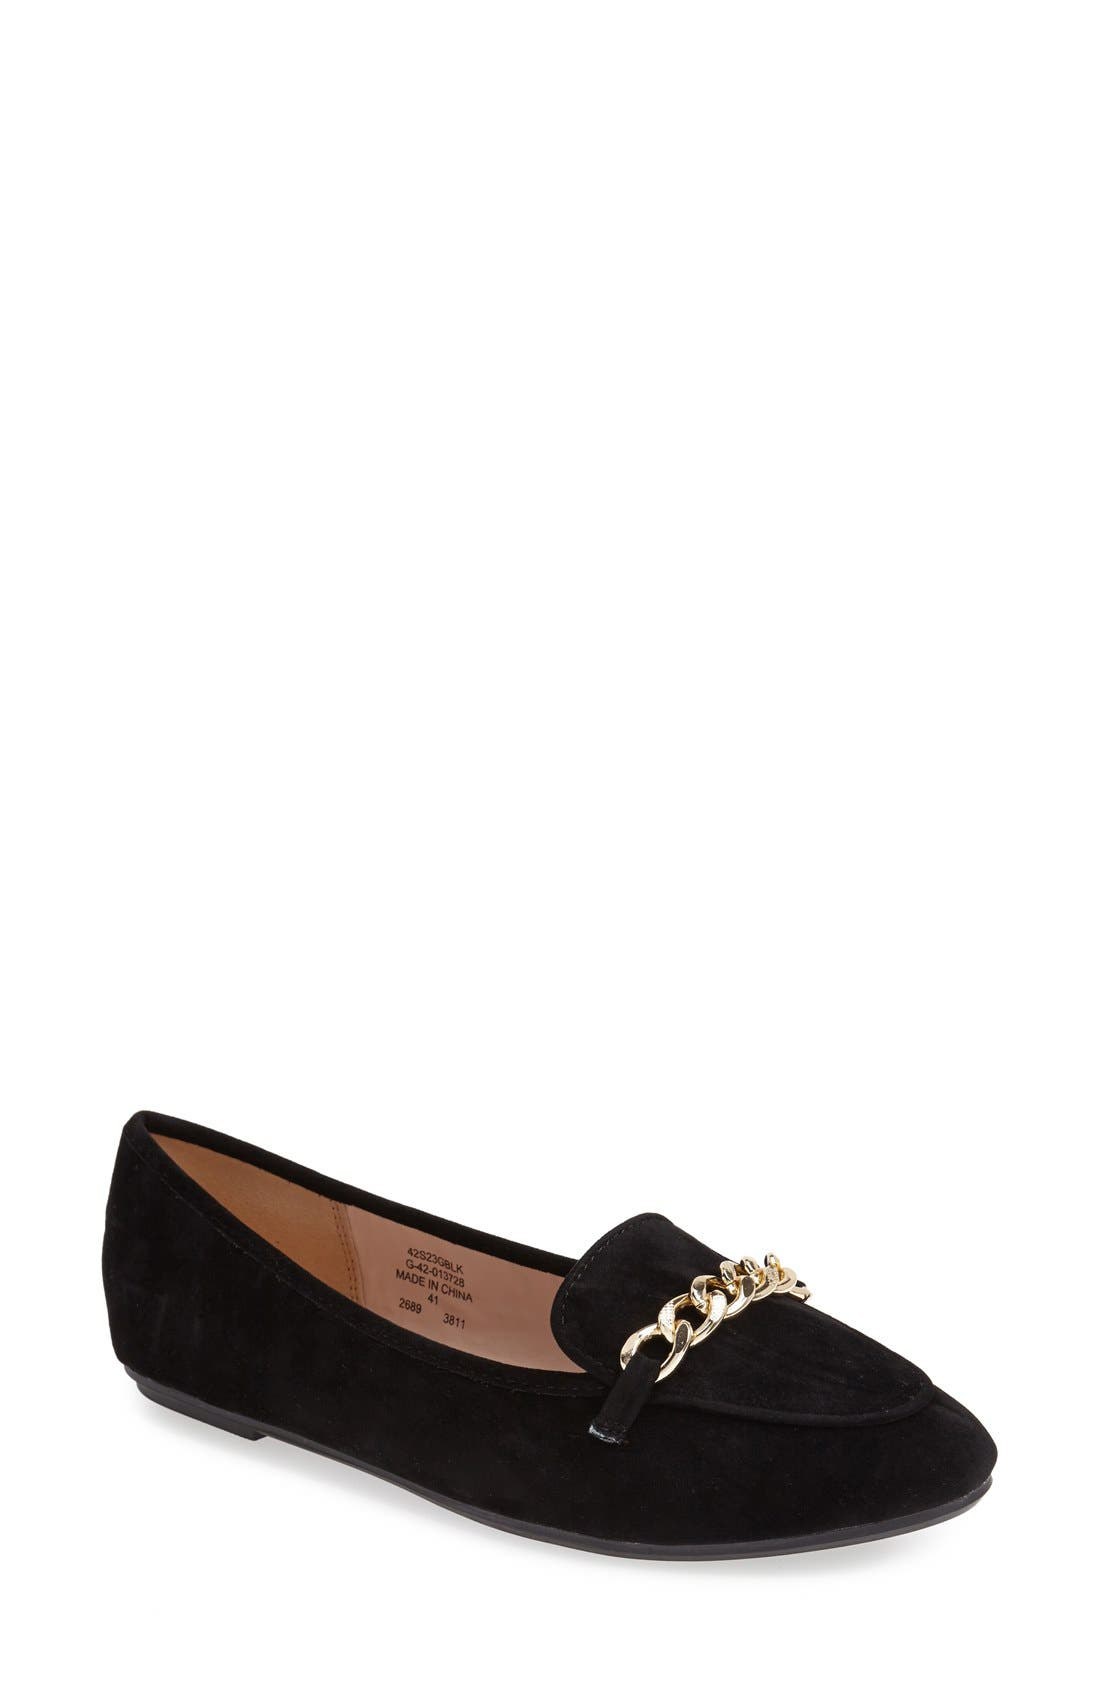 Main Image - Topshop 'Sovereign' Chain Flat (Women)